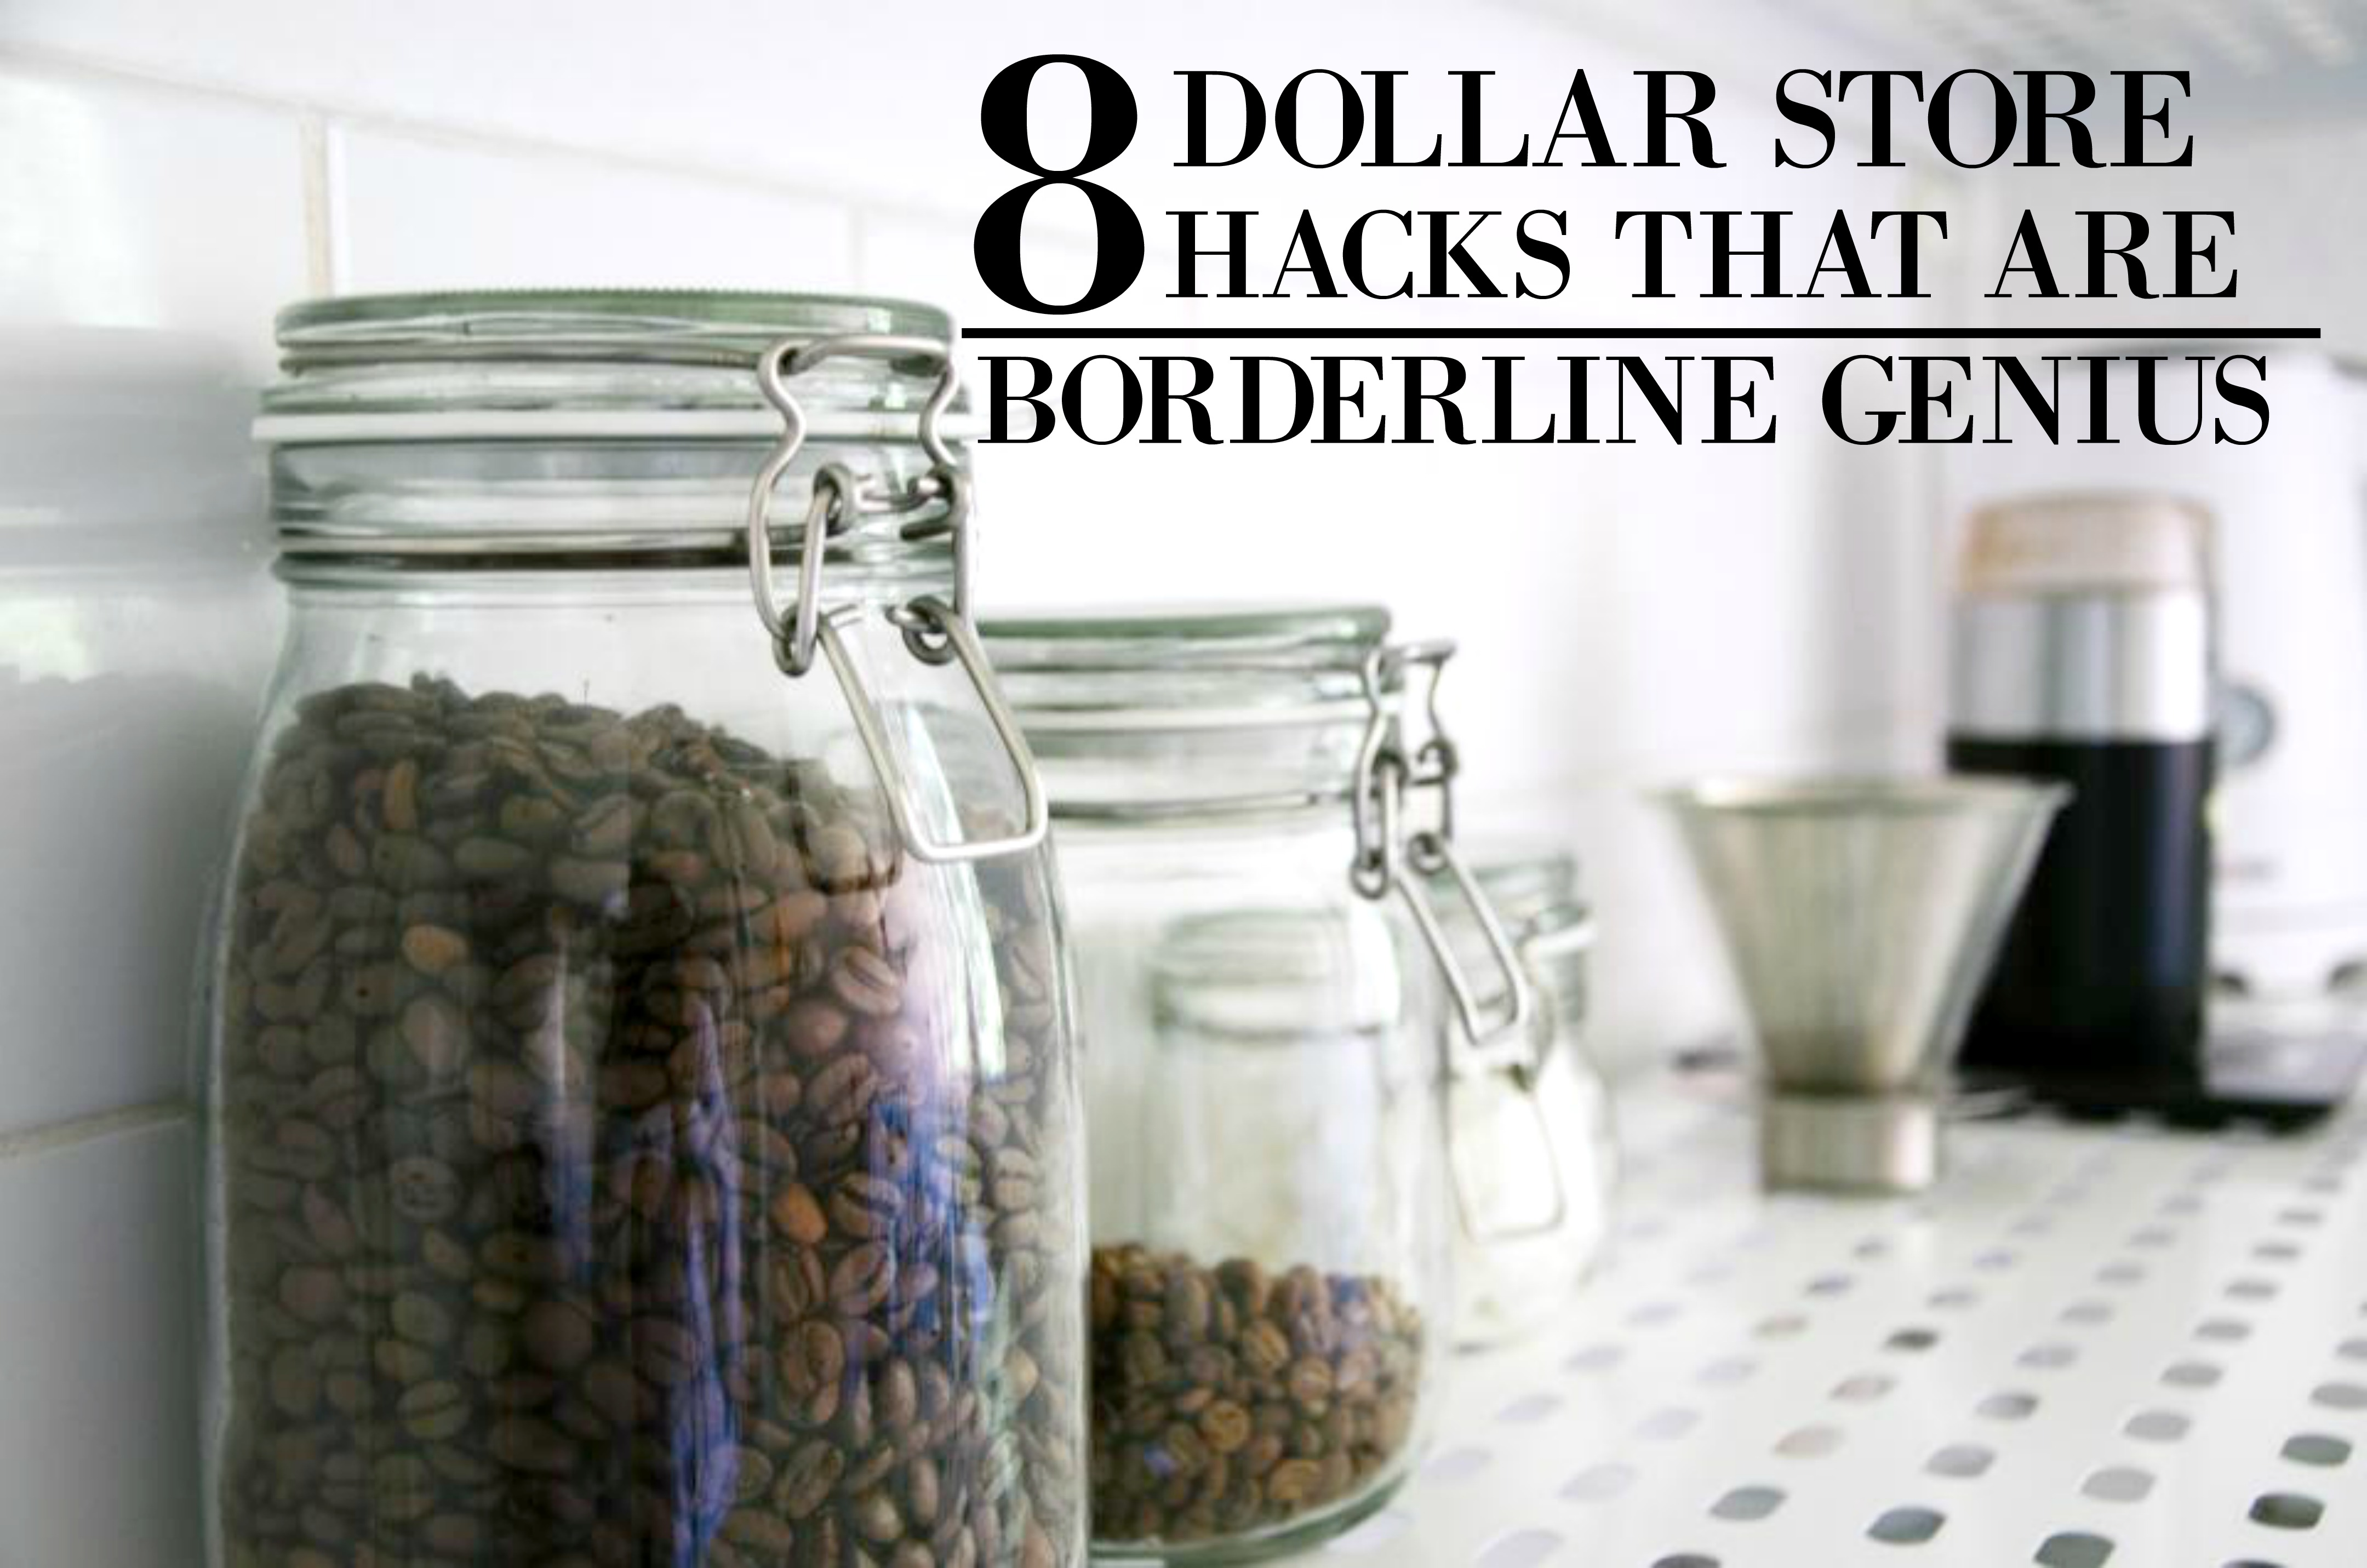 8 Dollar Store Hacks That Are Borderline Genius